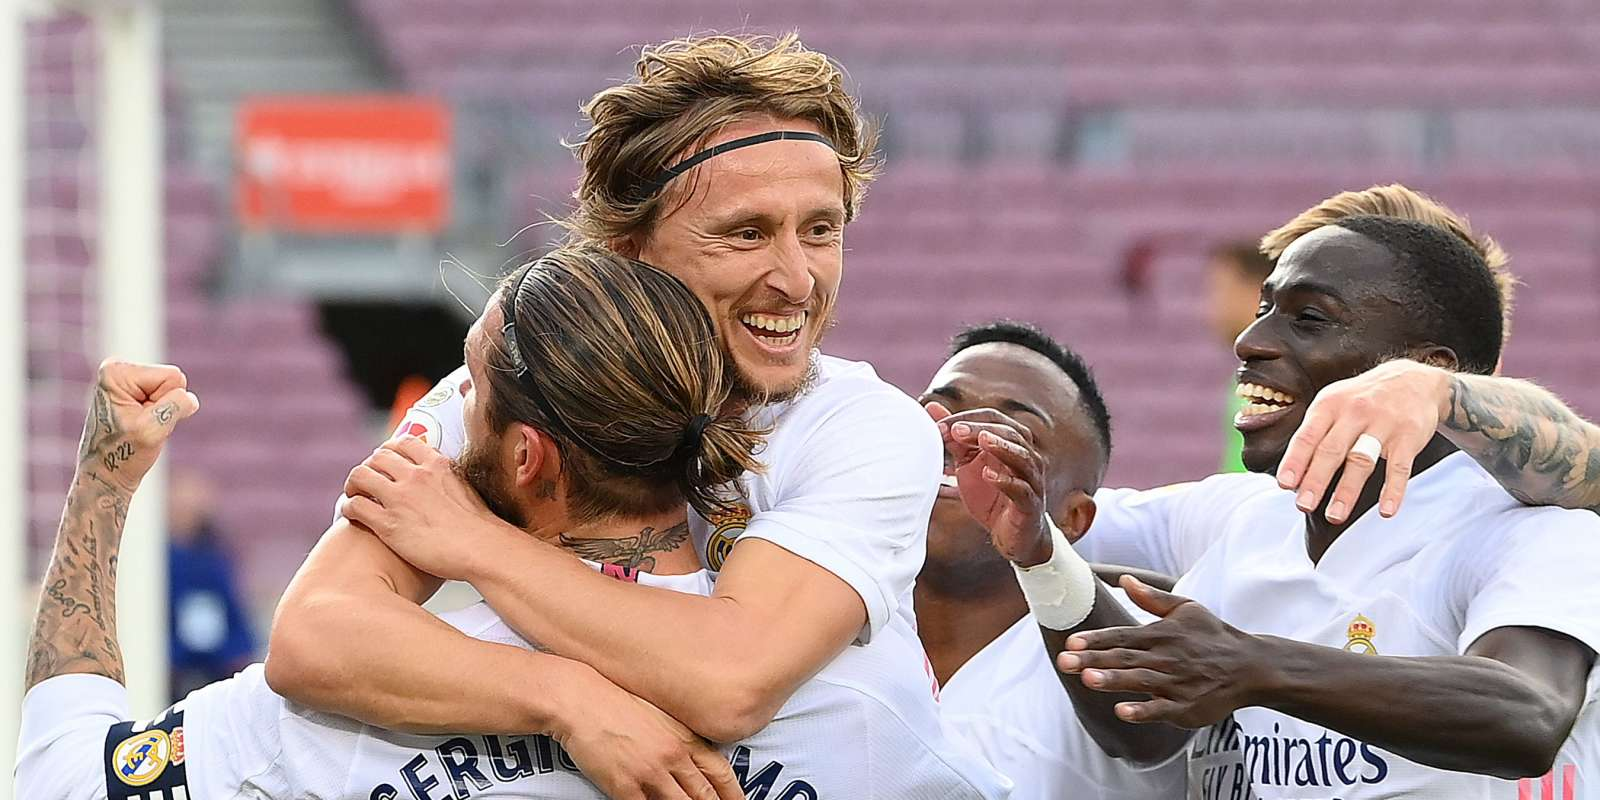 Real Madrid's Croatian midfielder Luka Modric (C) celebrates with teammates after scoring a goal during the Spanish League football match between Barcelona and Real Madrid at the Camp Nou stadium in Barcelona on October 24, 2020. / AFP / LLUIS GENE